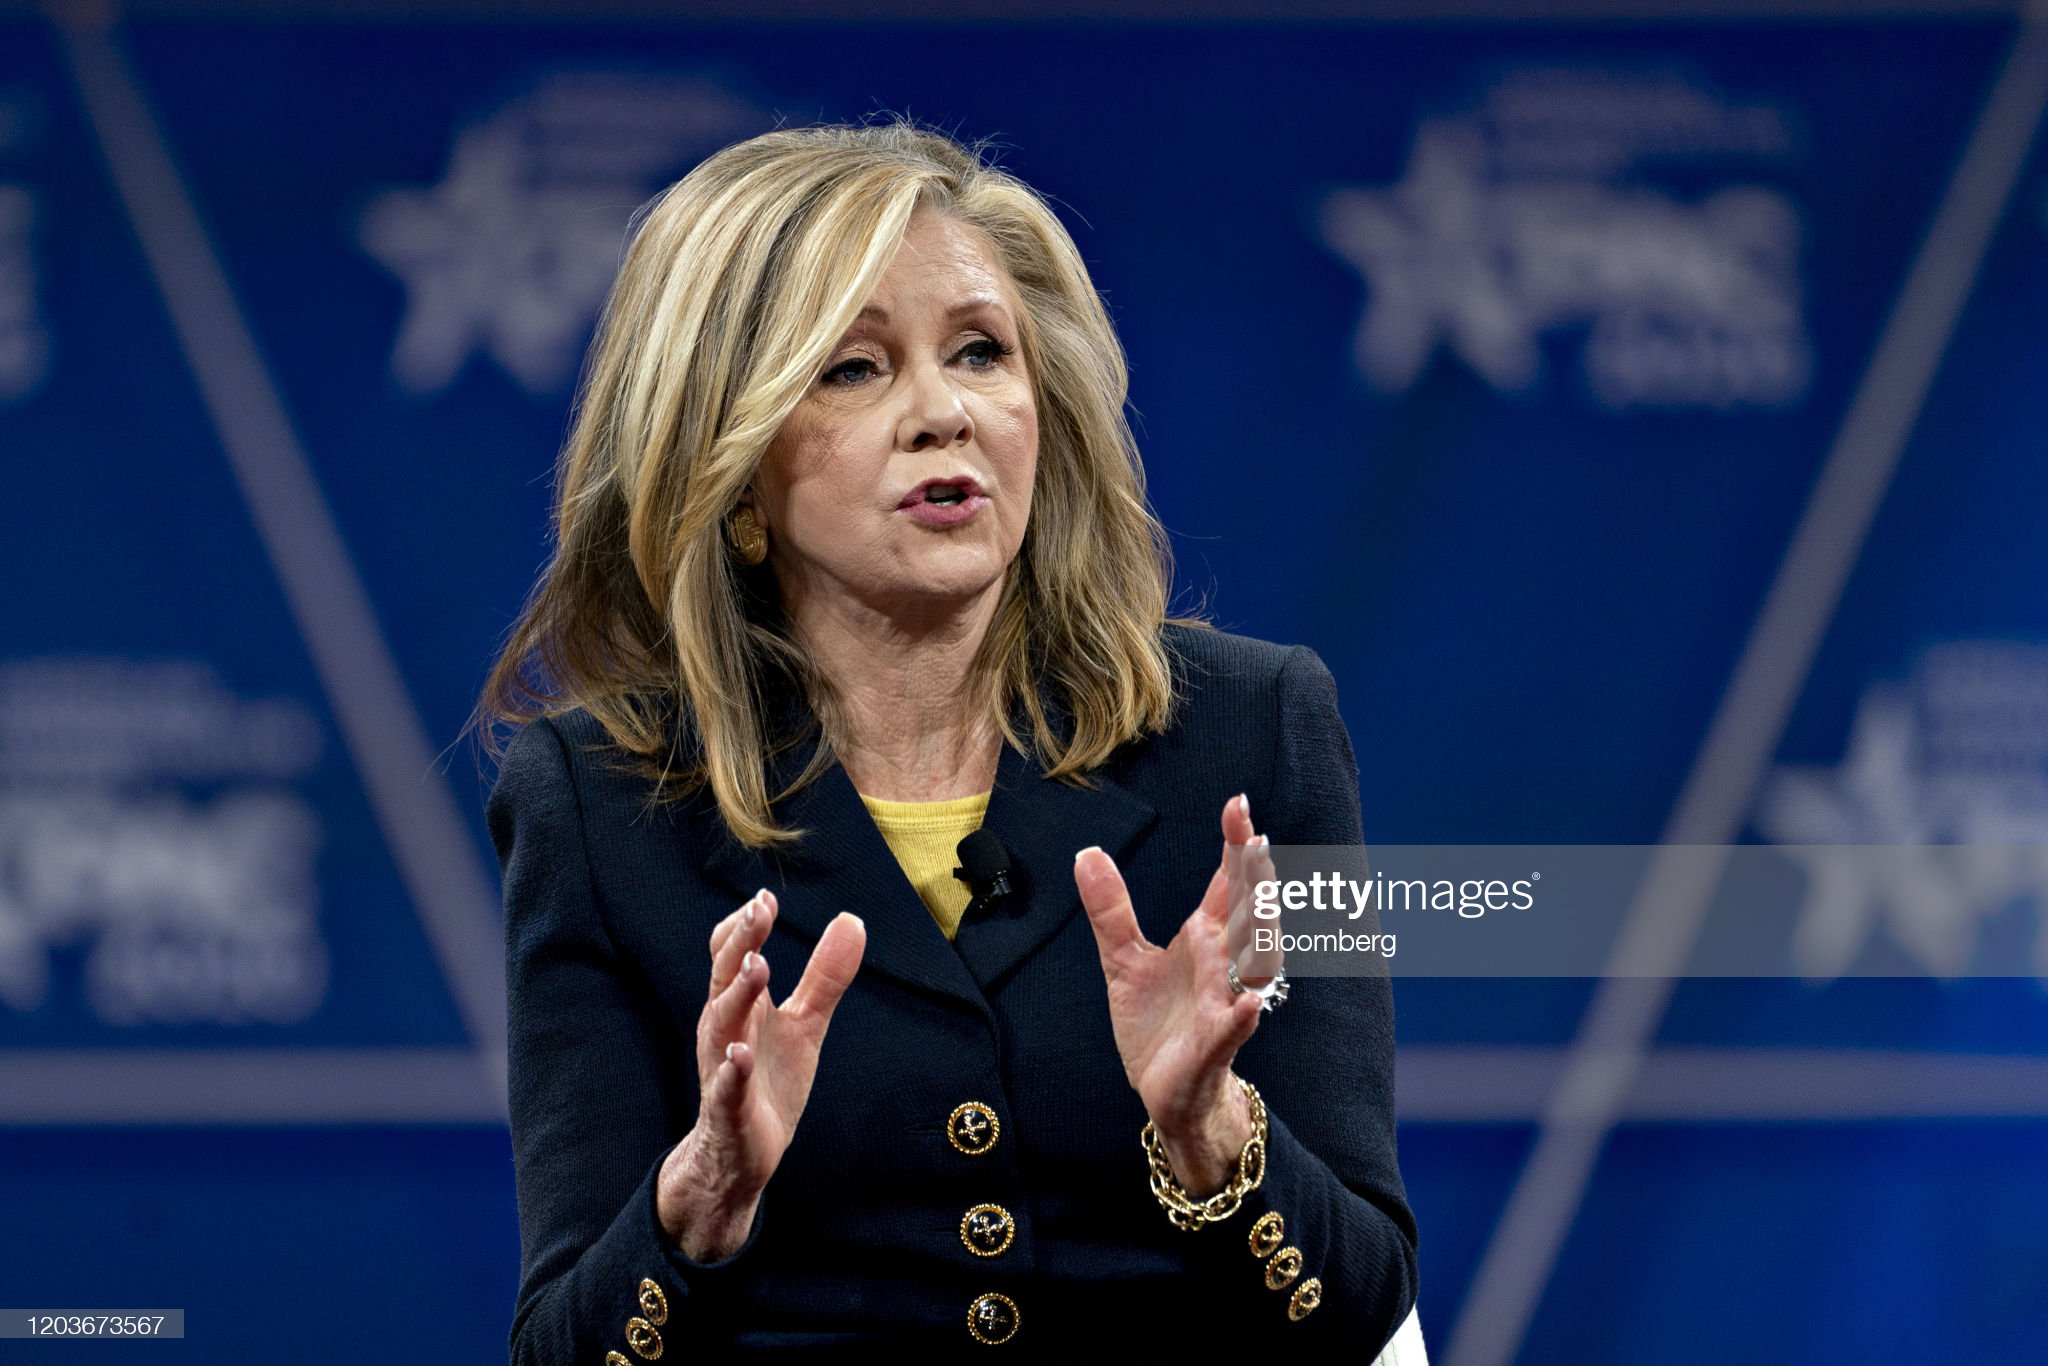 Key Speakers At The Conservative Political Action Conference : News Photo